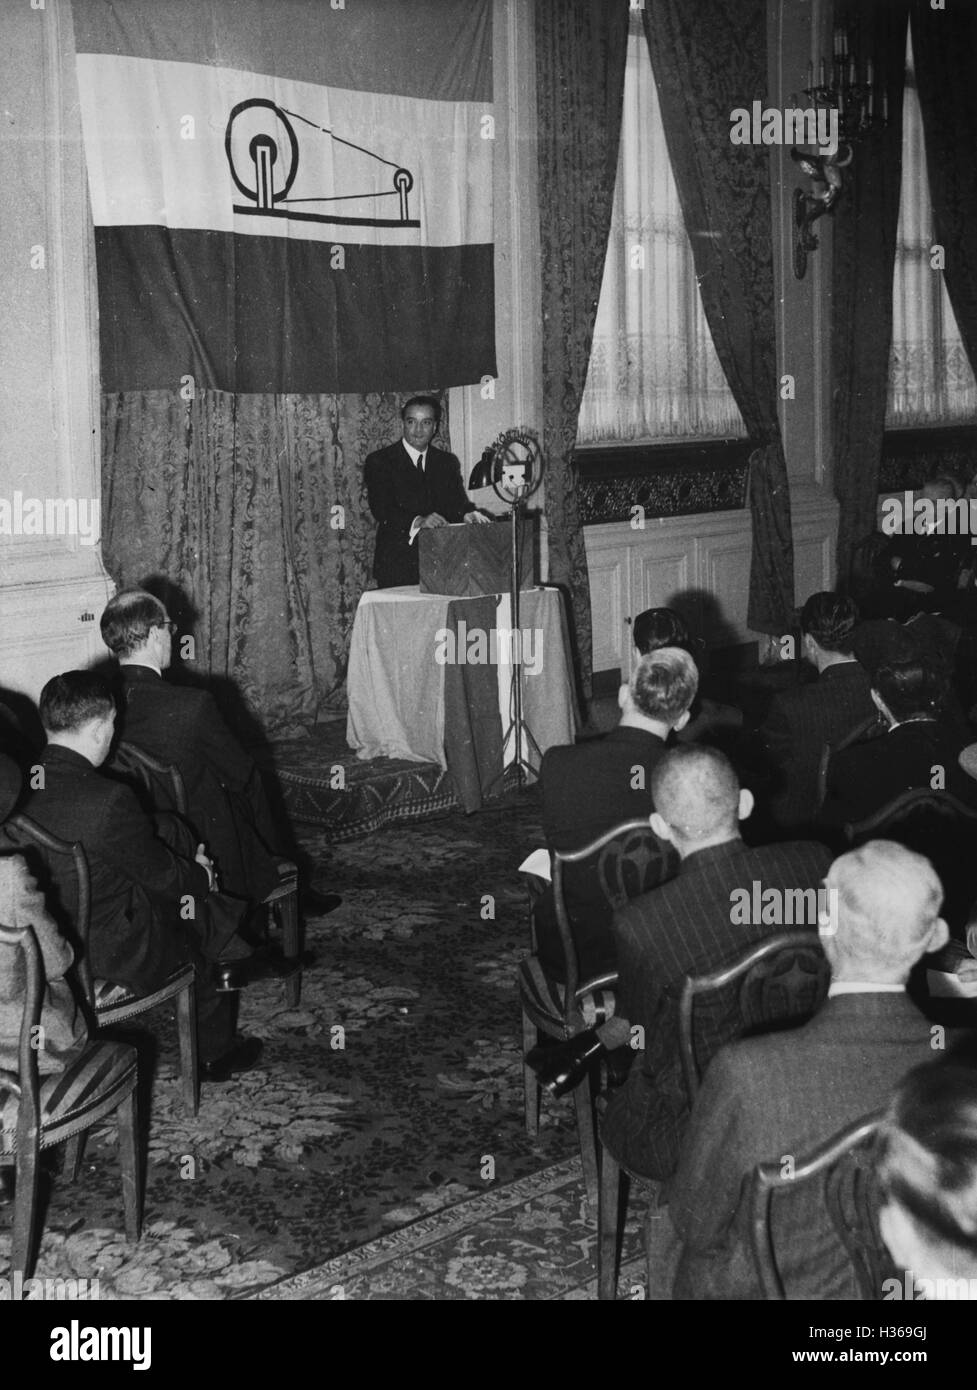 Commemoration ceremony of the Government of Free India in Berlin, 1943 - Stock Image